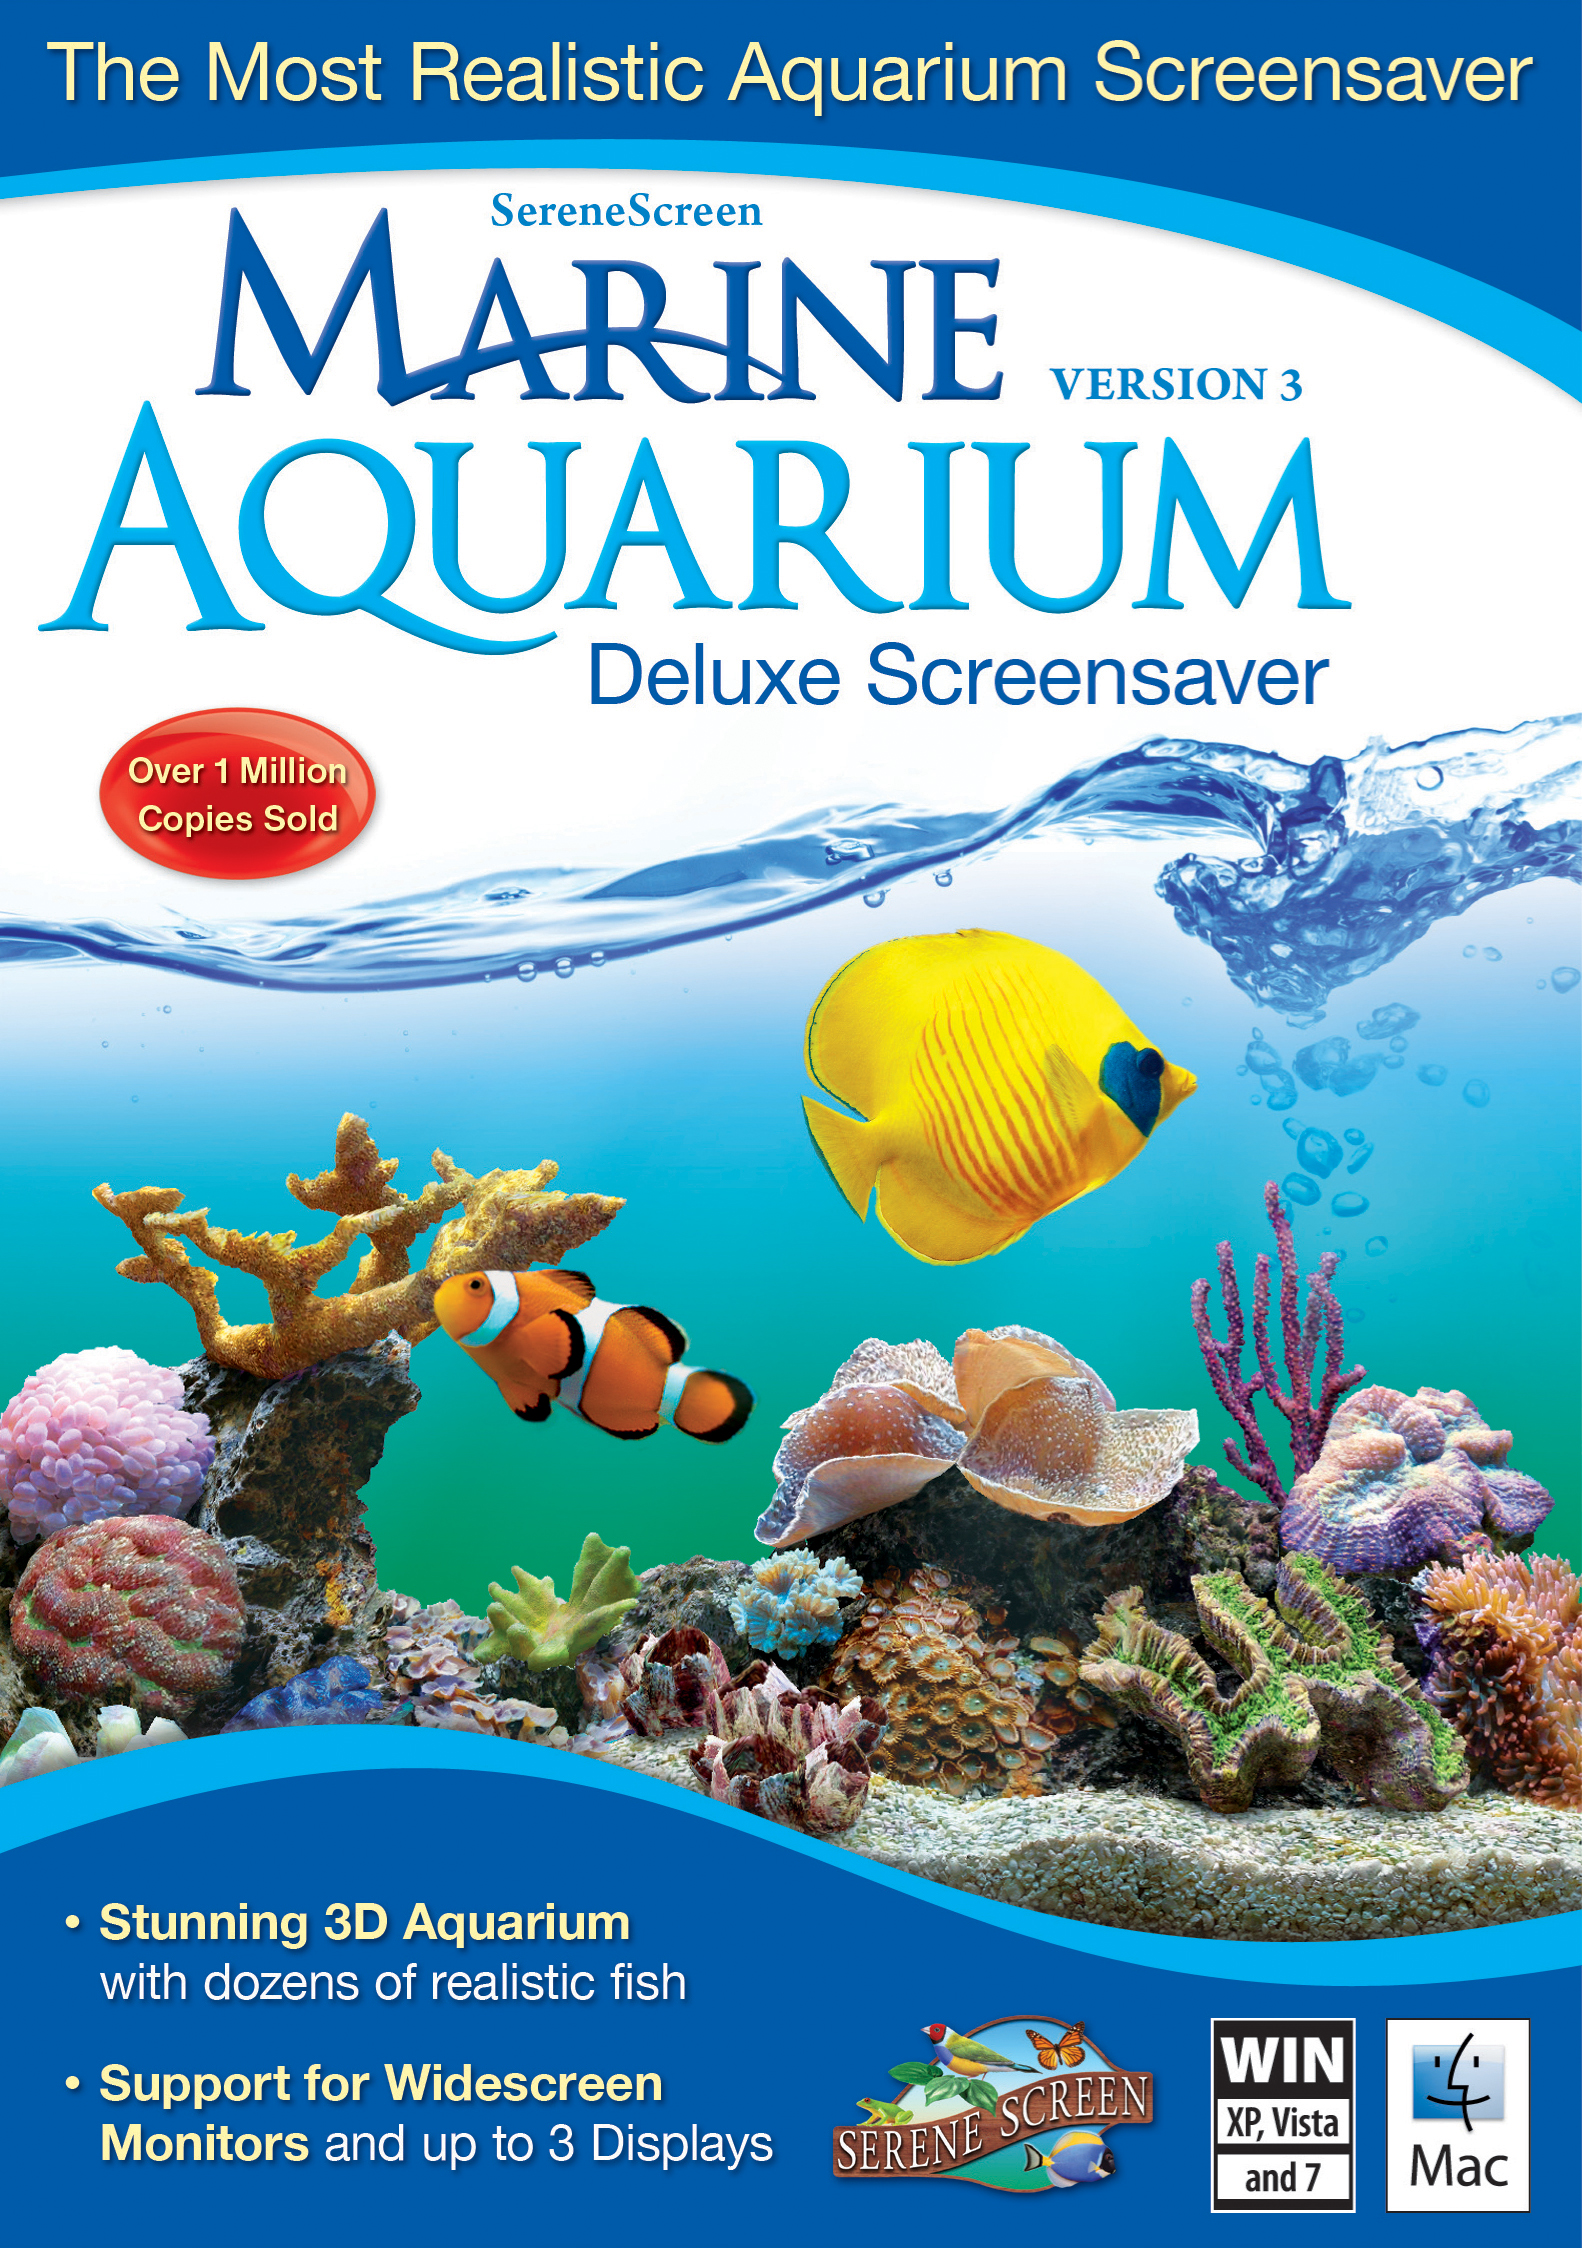 MarineAquariumLite - Digital Aquarium for your Desktop